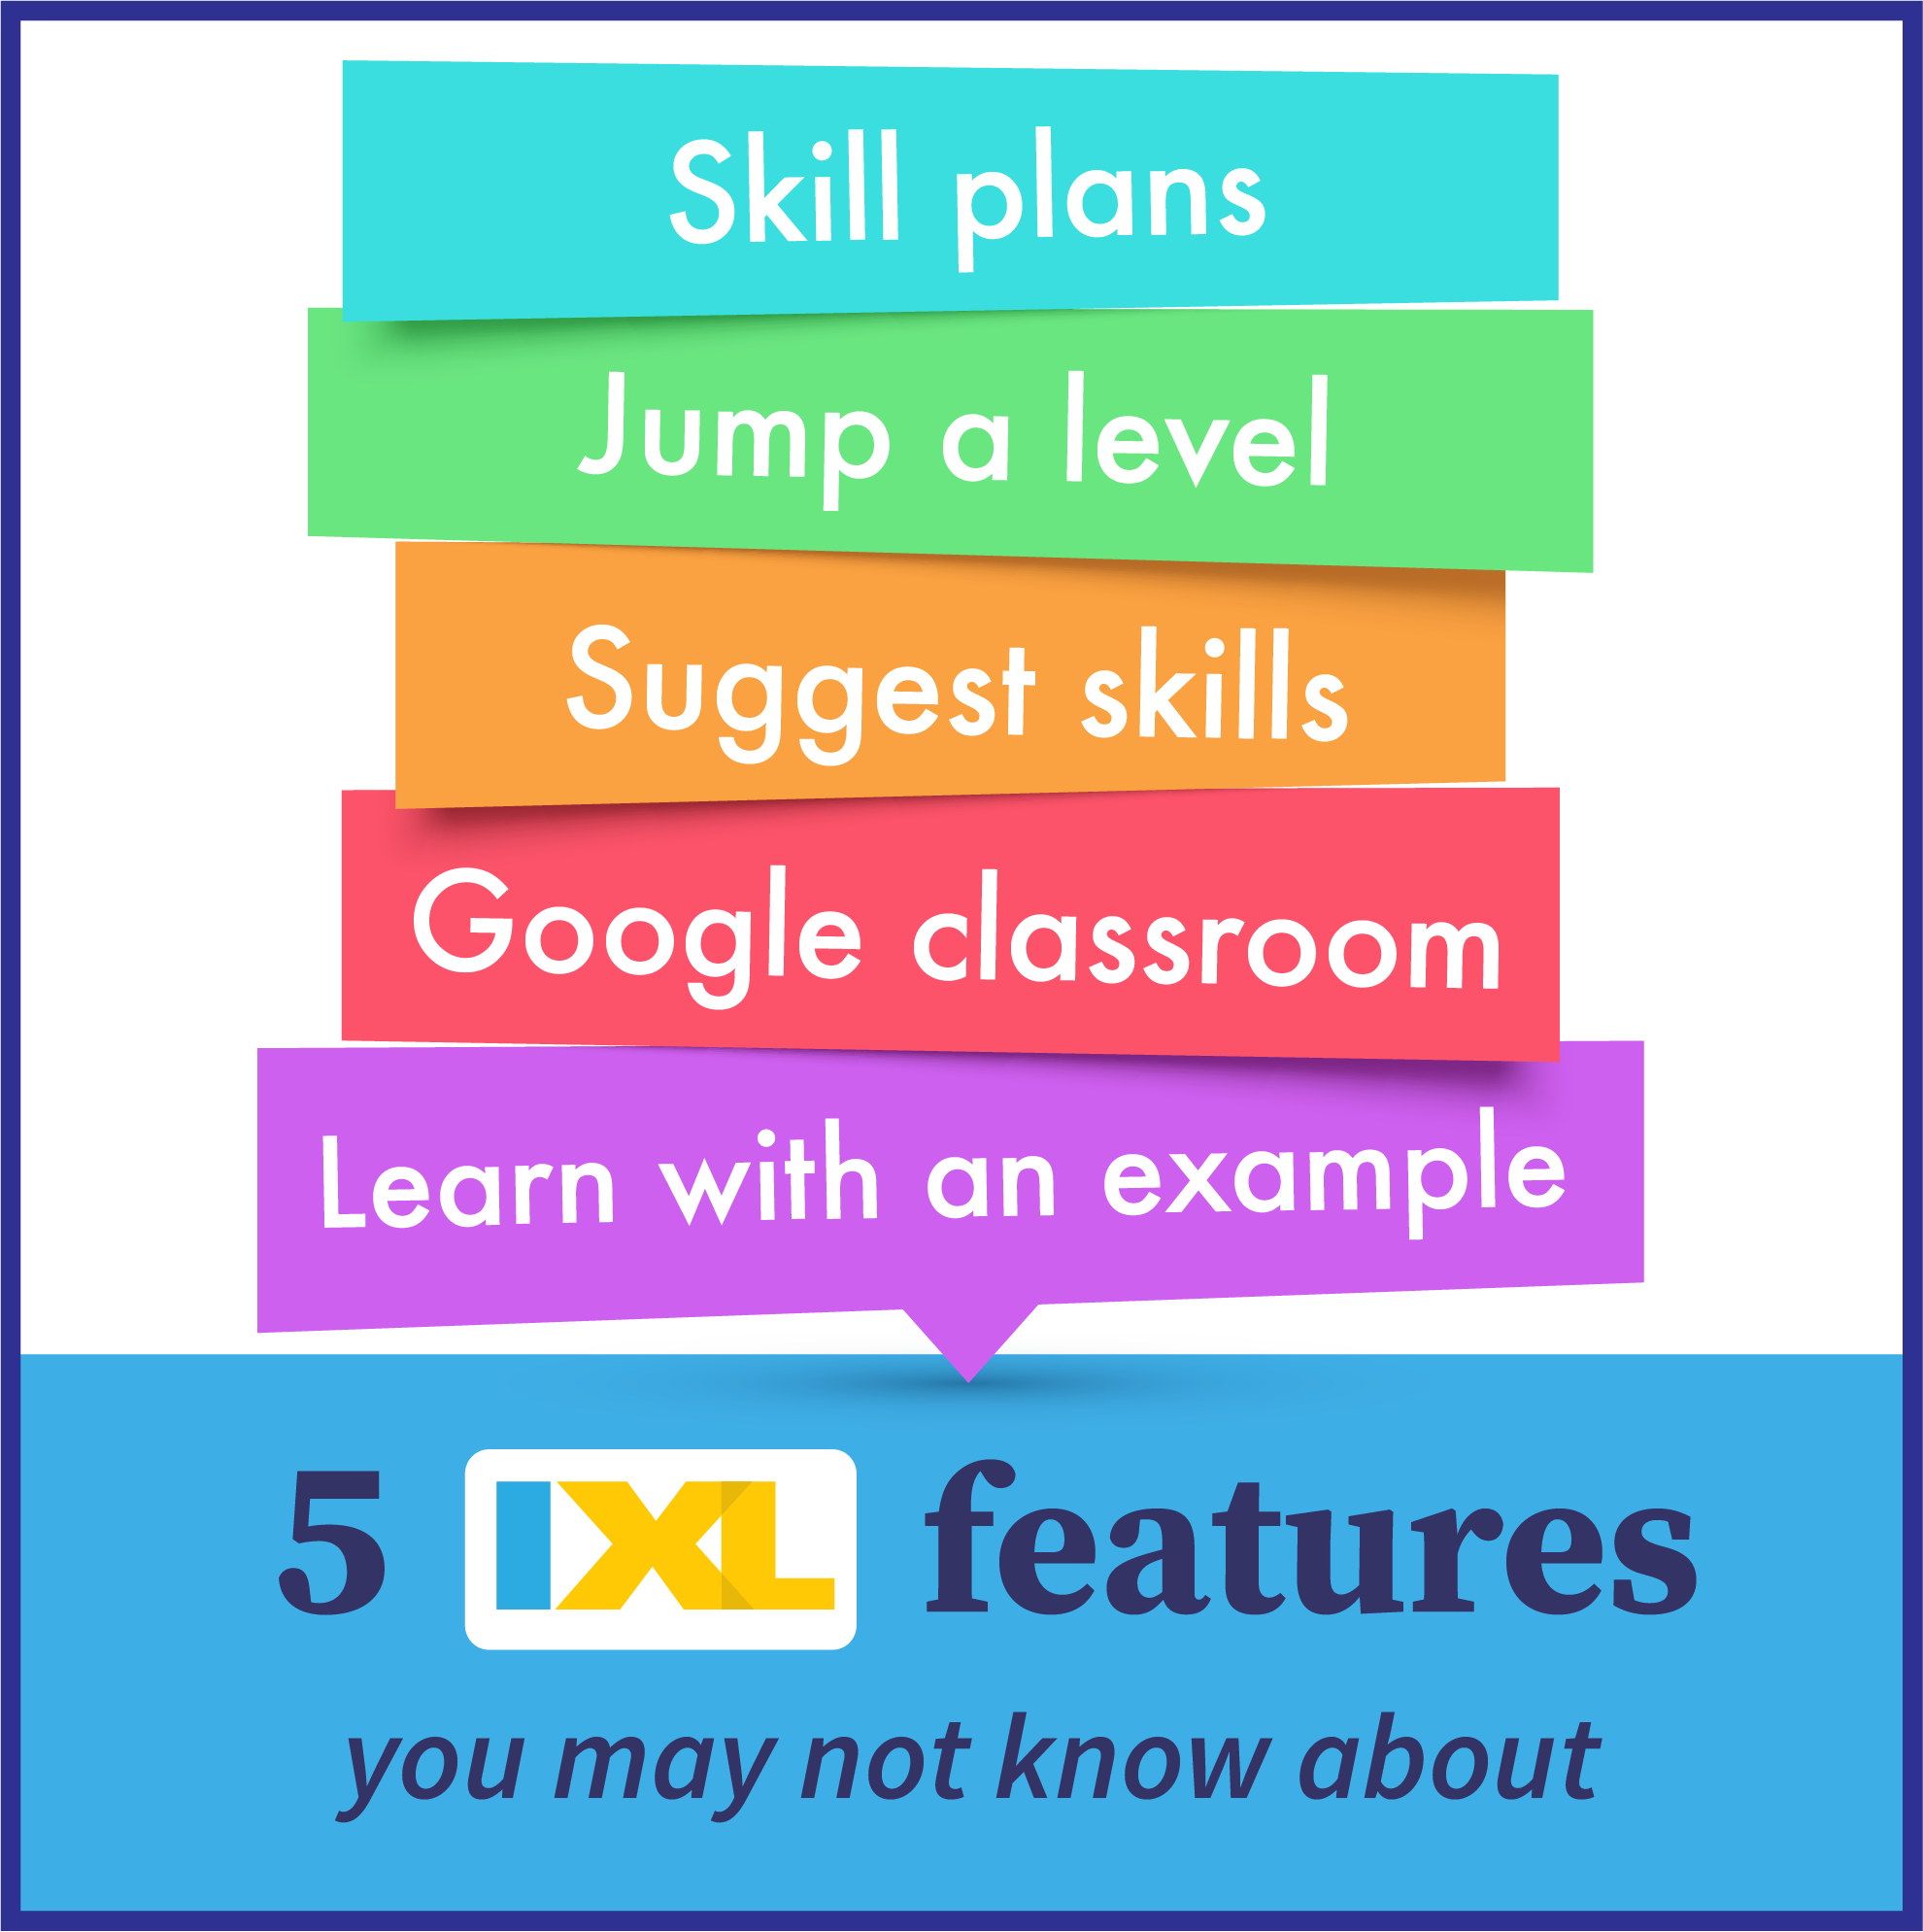 5 cool and useful IXL features you may not know about